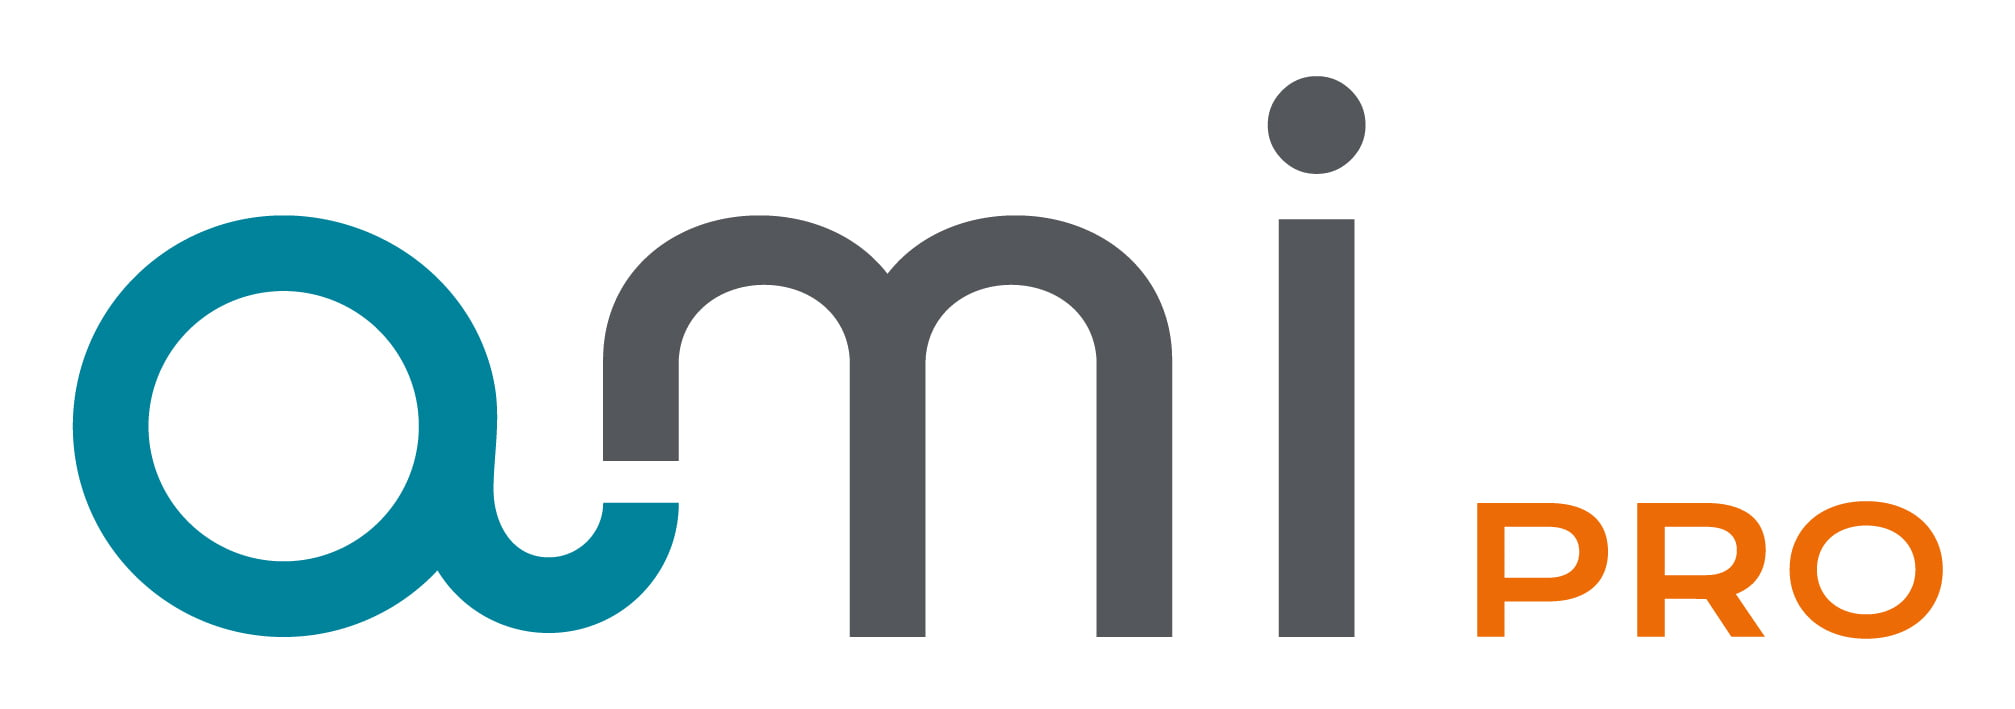 MeetAmi Launches Canada's First-Ever Digital Asset Management Platform With AmiPRO